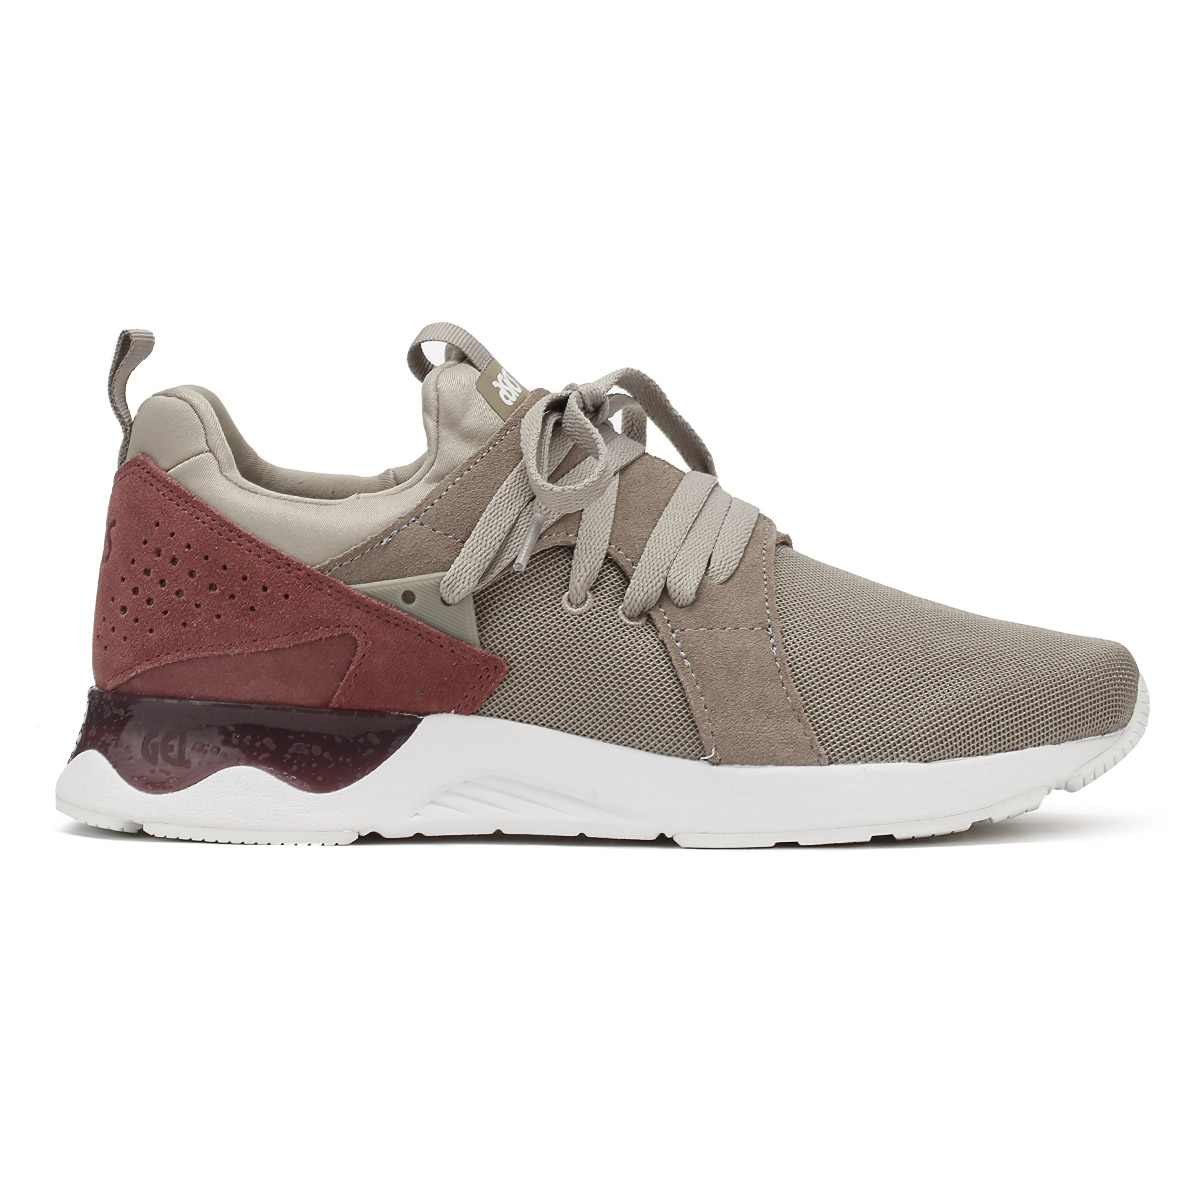 ASICS  Uomo Trainers Moon Rock & Rose Taupe Gel-Lyte Schuhes V Sanze Sport Casual Schuhes Gel-Lyte a5122a